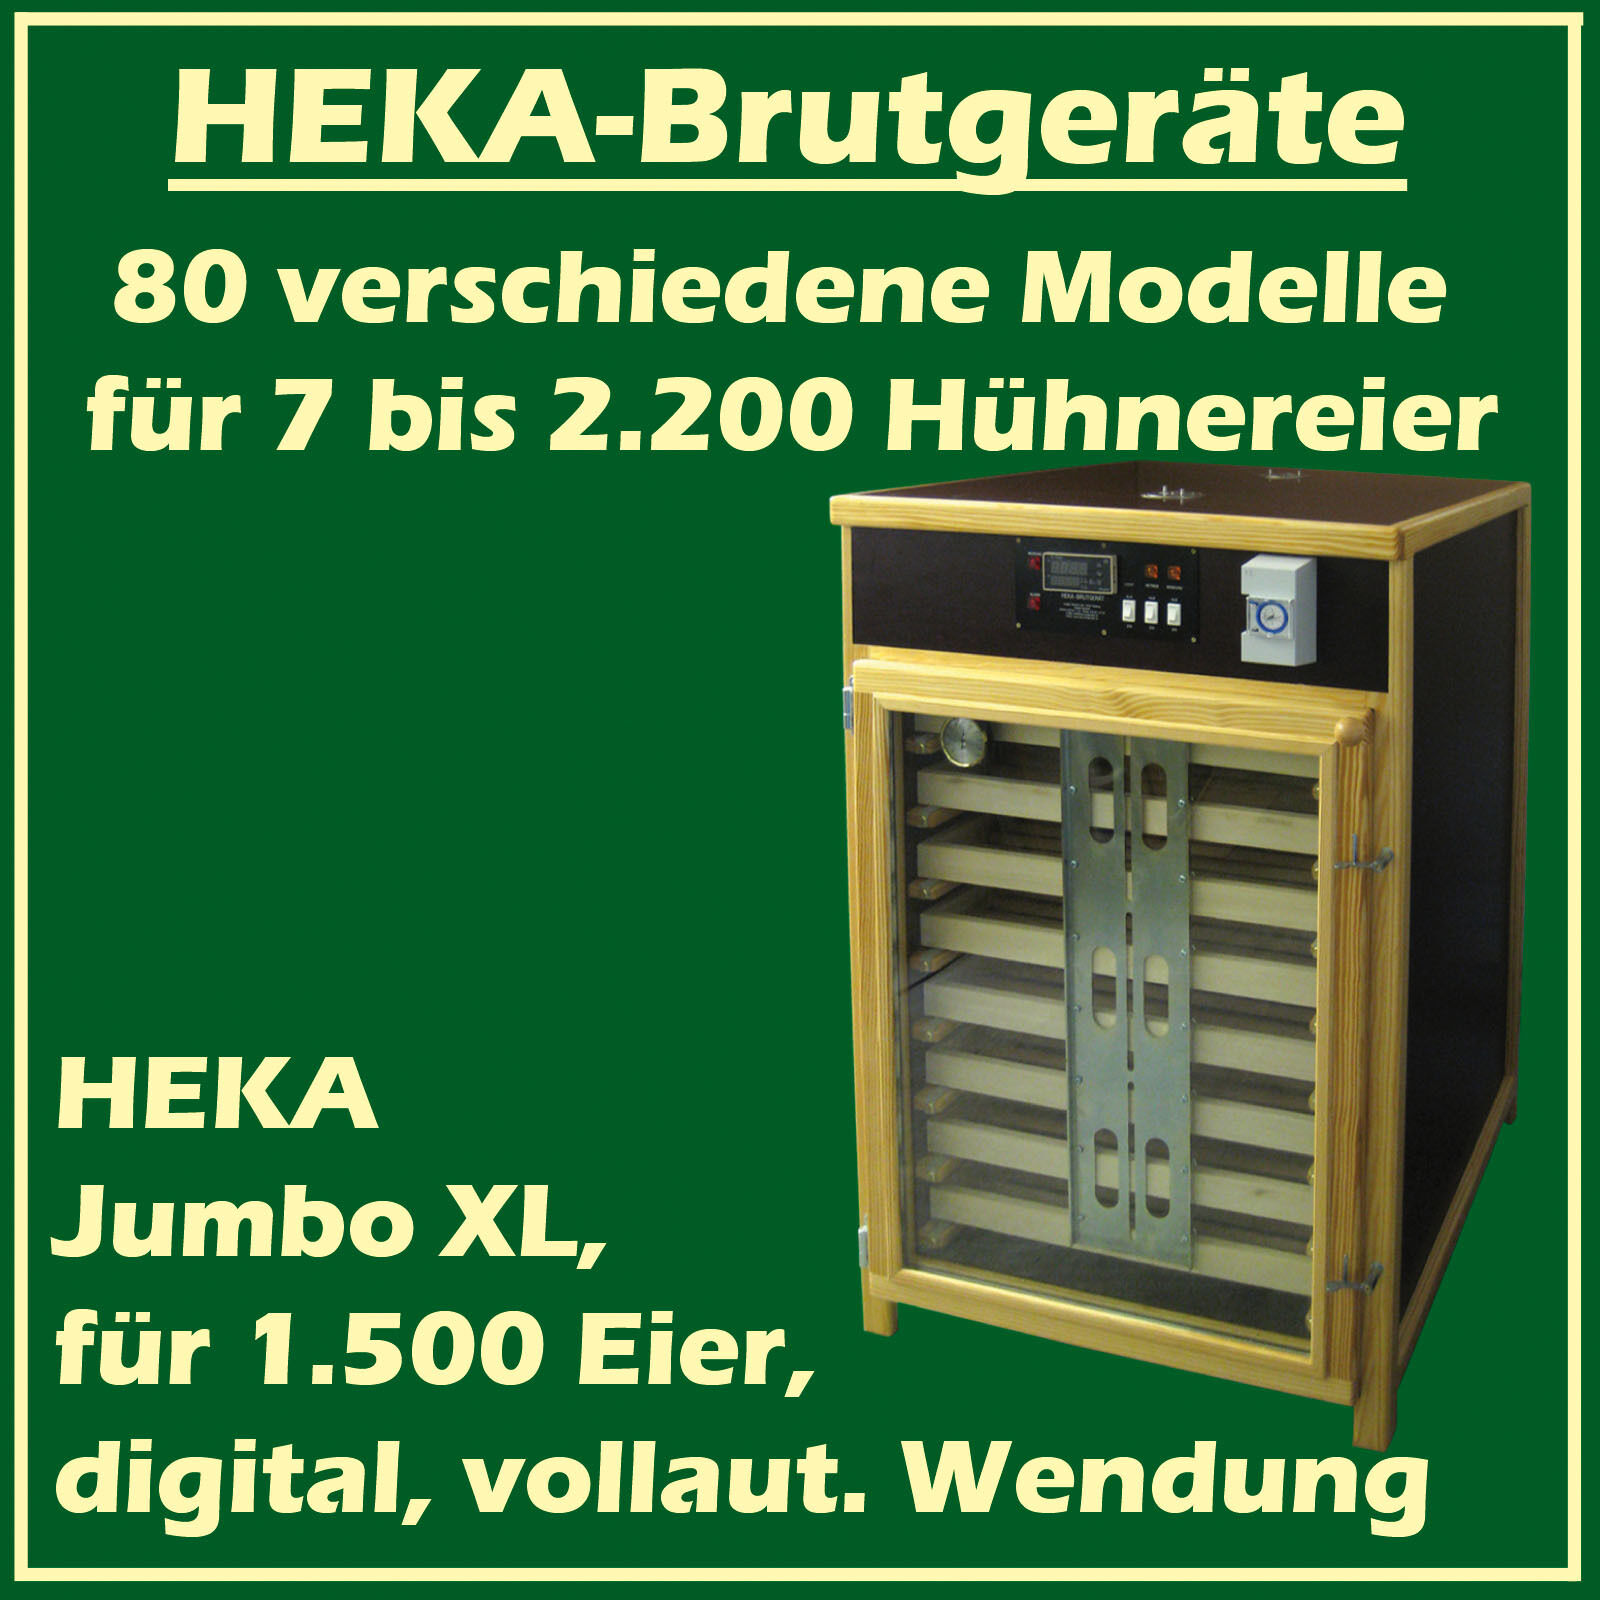 Heka Jumbo XL-Fully-Automatic Egg-Incubator for 1500 Eggs -  Made in Germany